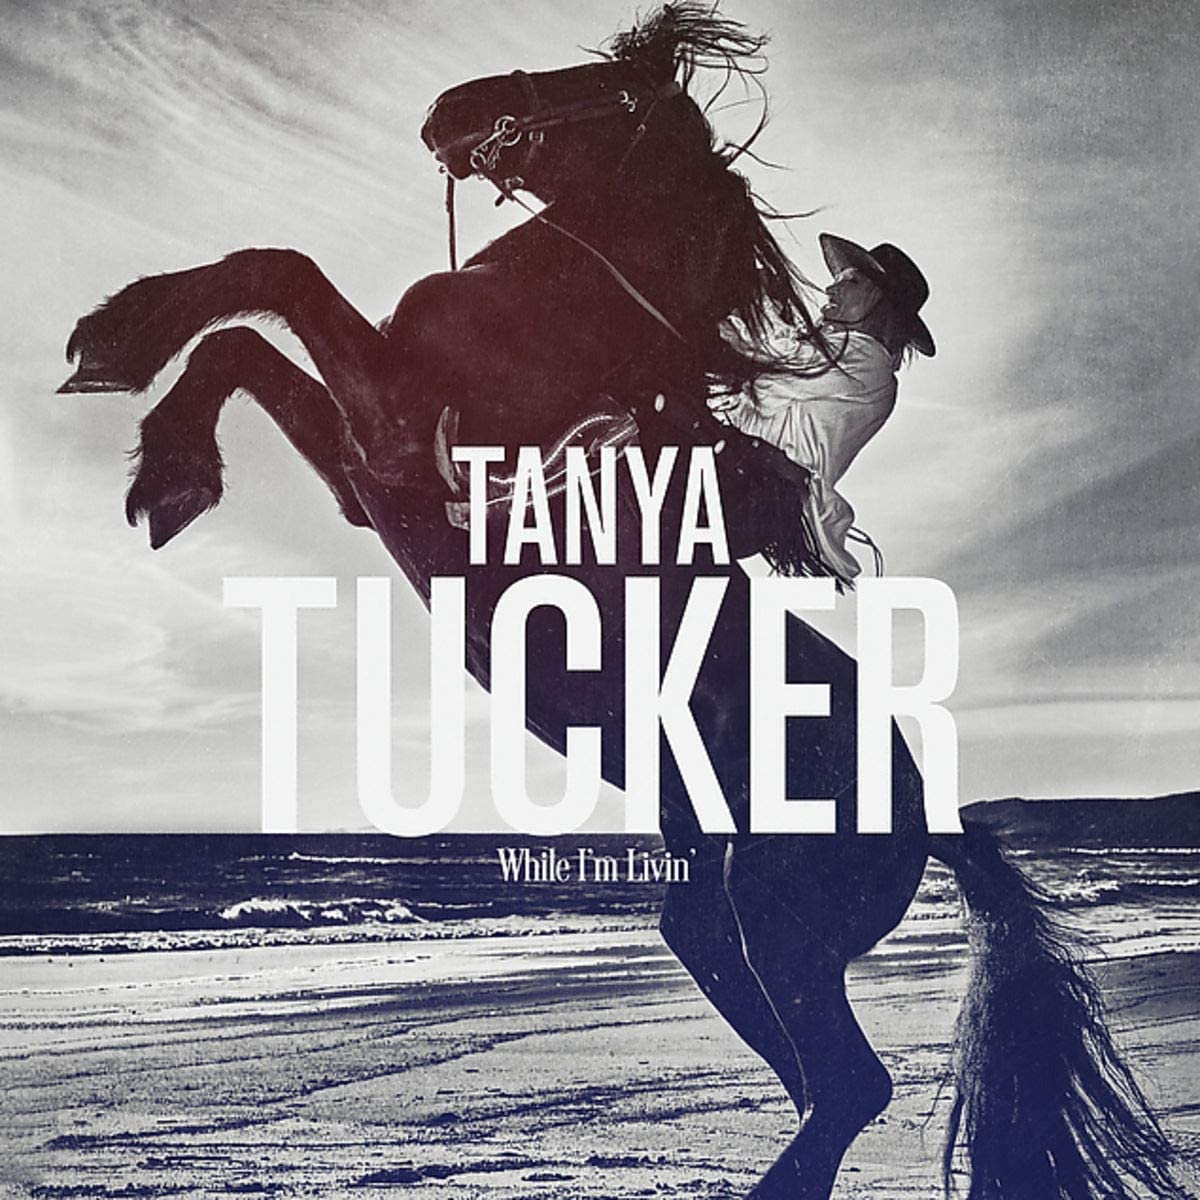 Tucker, Tanya/While I'm Livin' [LP]